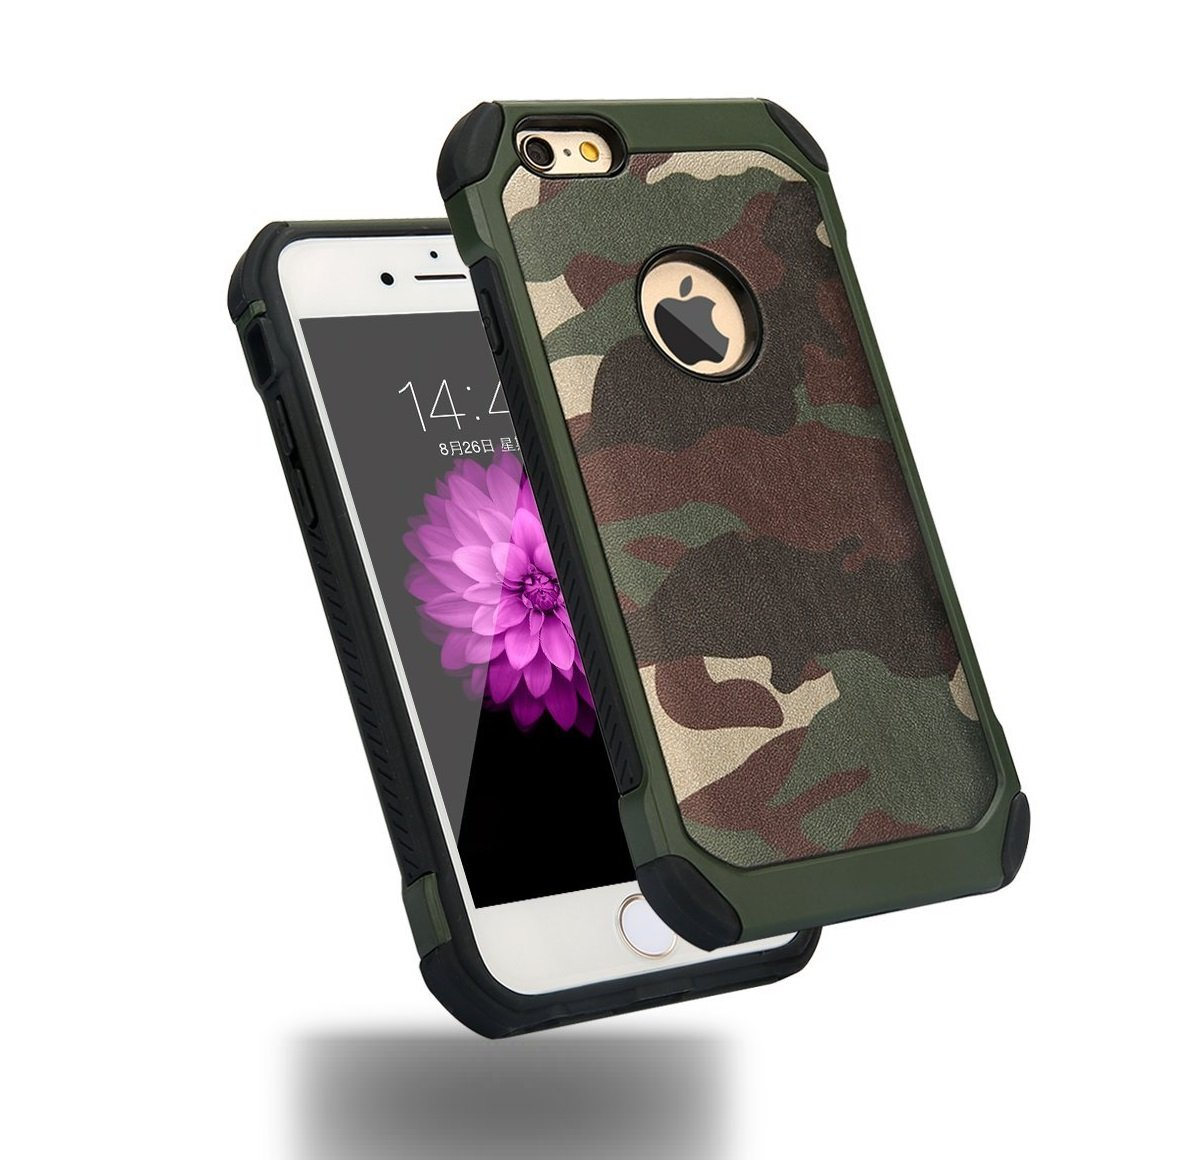 new styles 8940c a753d iPhone 5 5S SE Army Case by C63® Military Camouflage Hard Protective Army  Case Cover